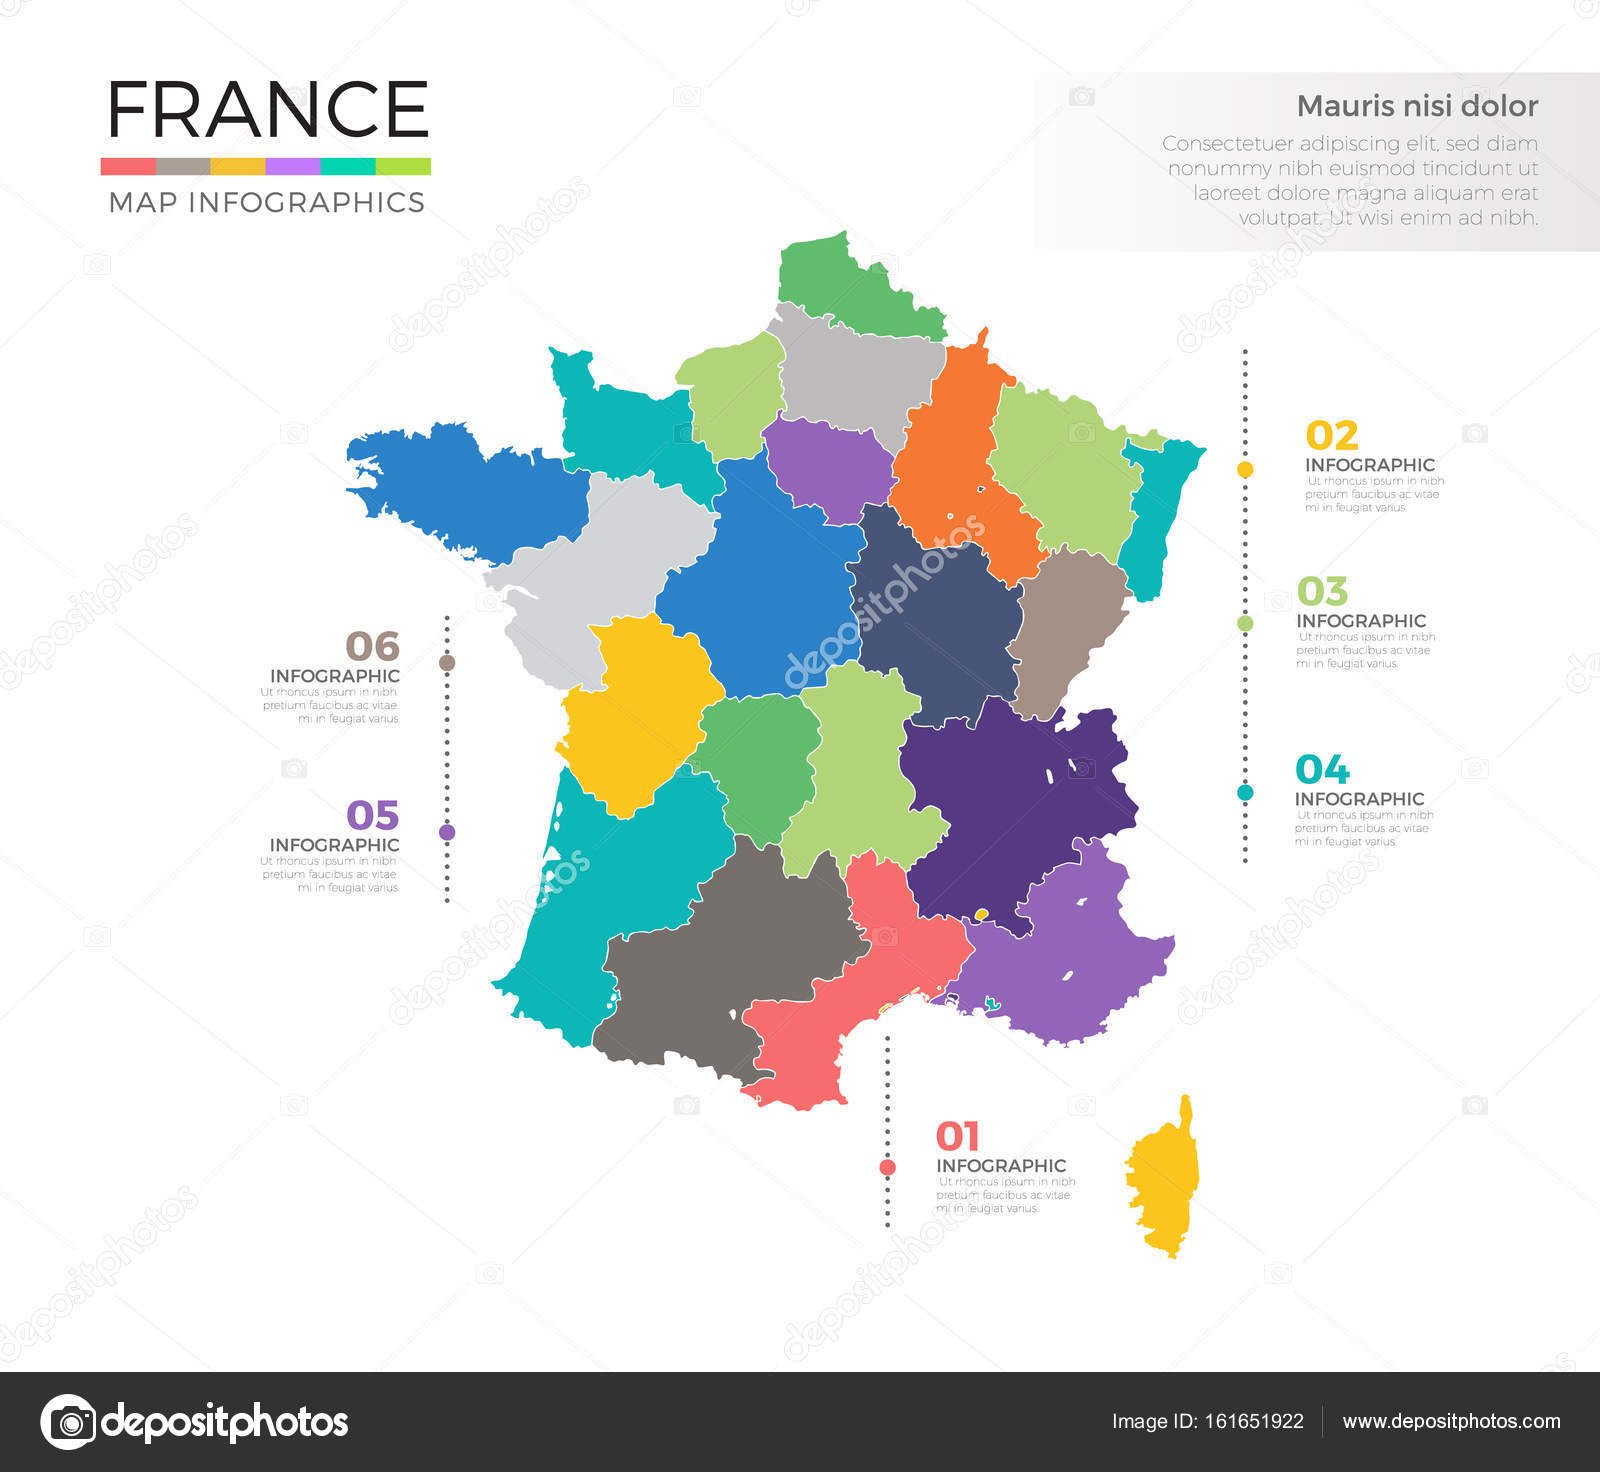 Country Map Of France.France Country Map Stock Vector C Pixar 161651922